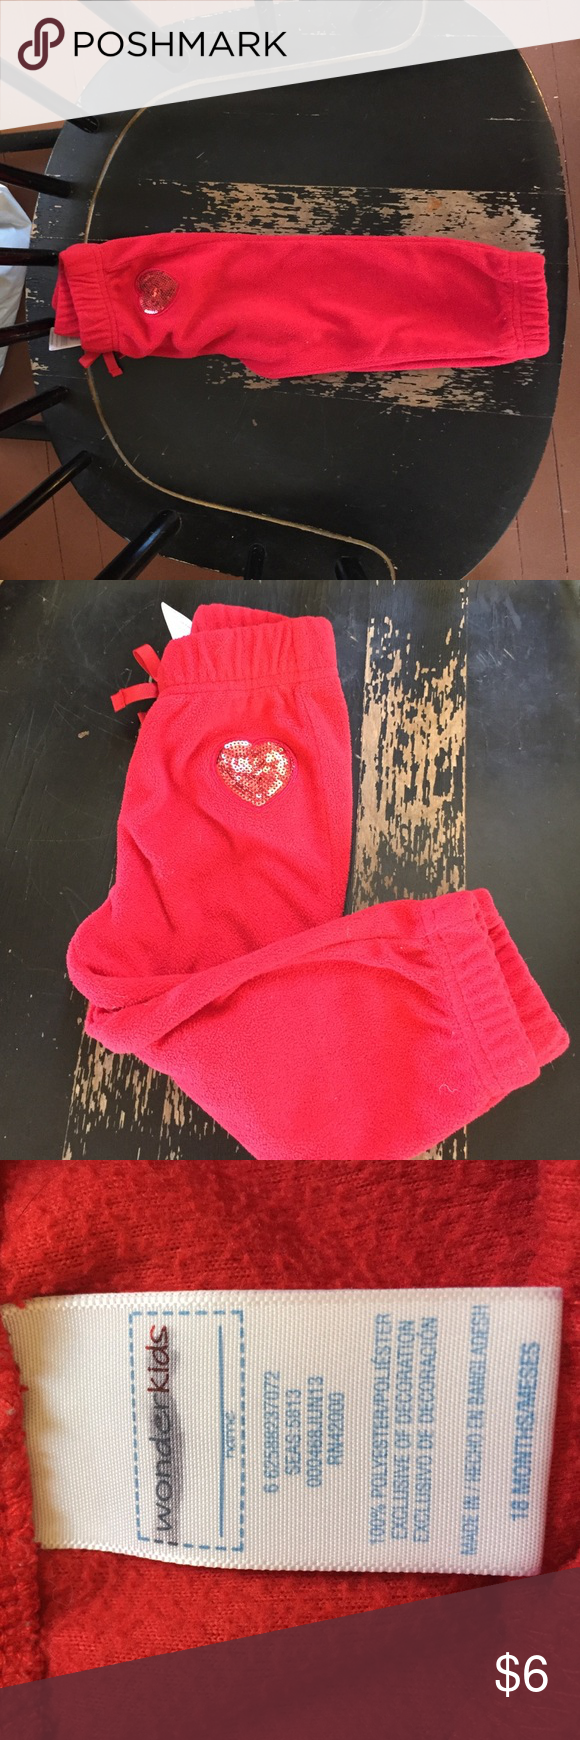 Wonder kids sweatpants Very soft and comfortable sweatpants with a flashy heart on the front! One of Daughters favorites but have out grown! No noticeable wear! Wonder Kids Bottoms Sweatpants & Joggers